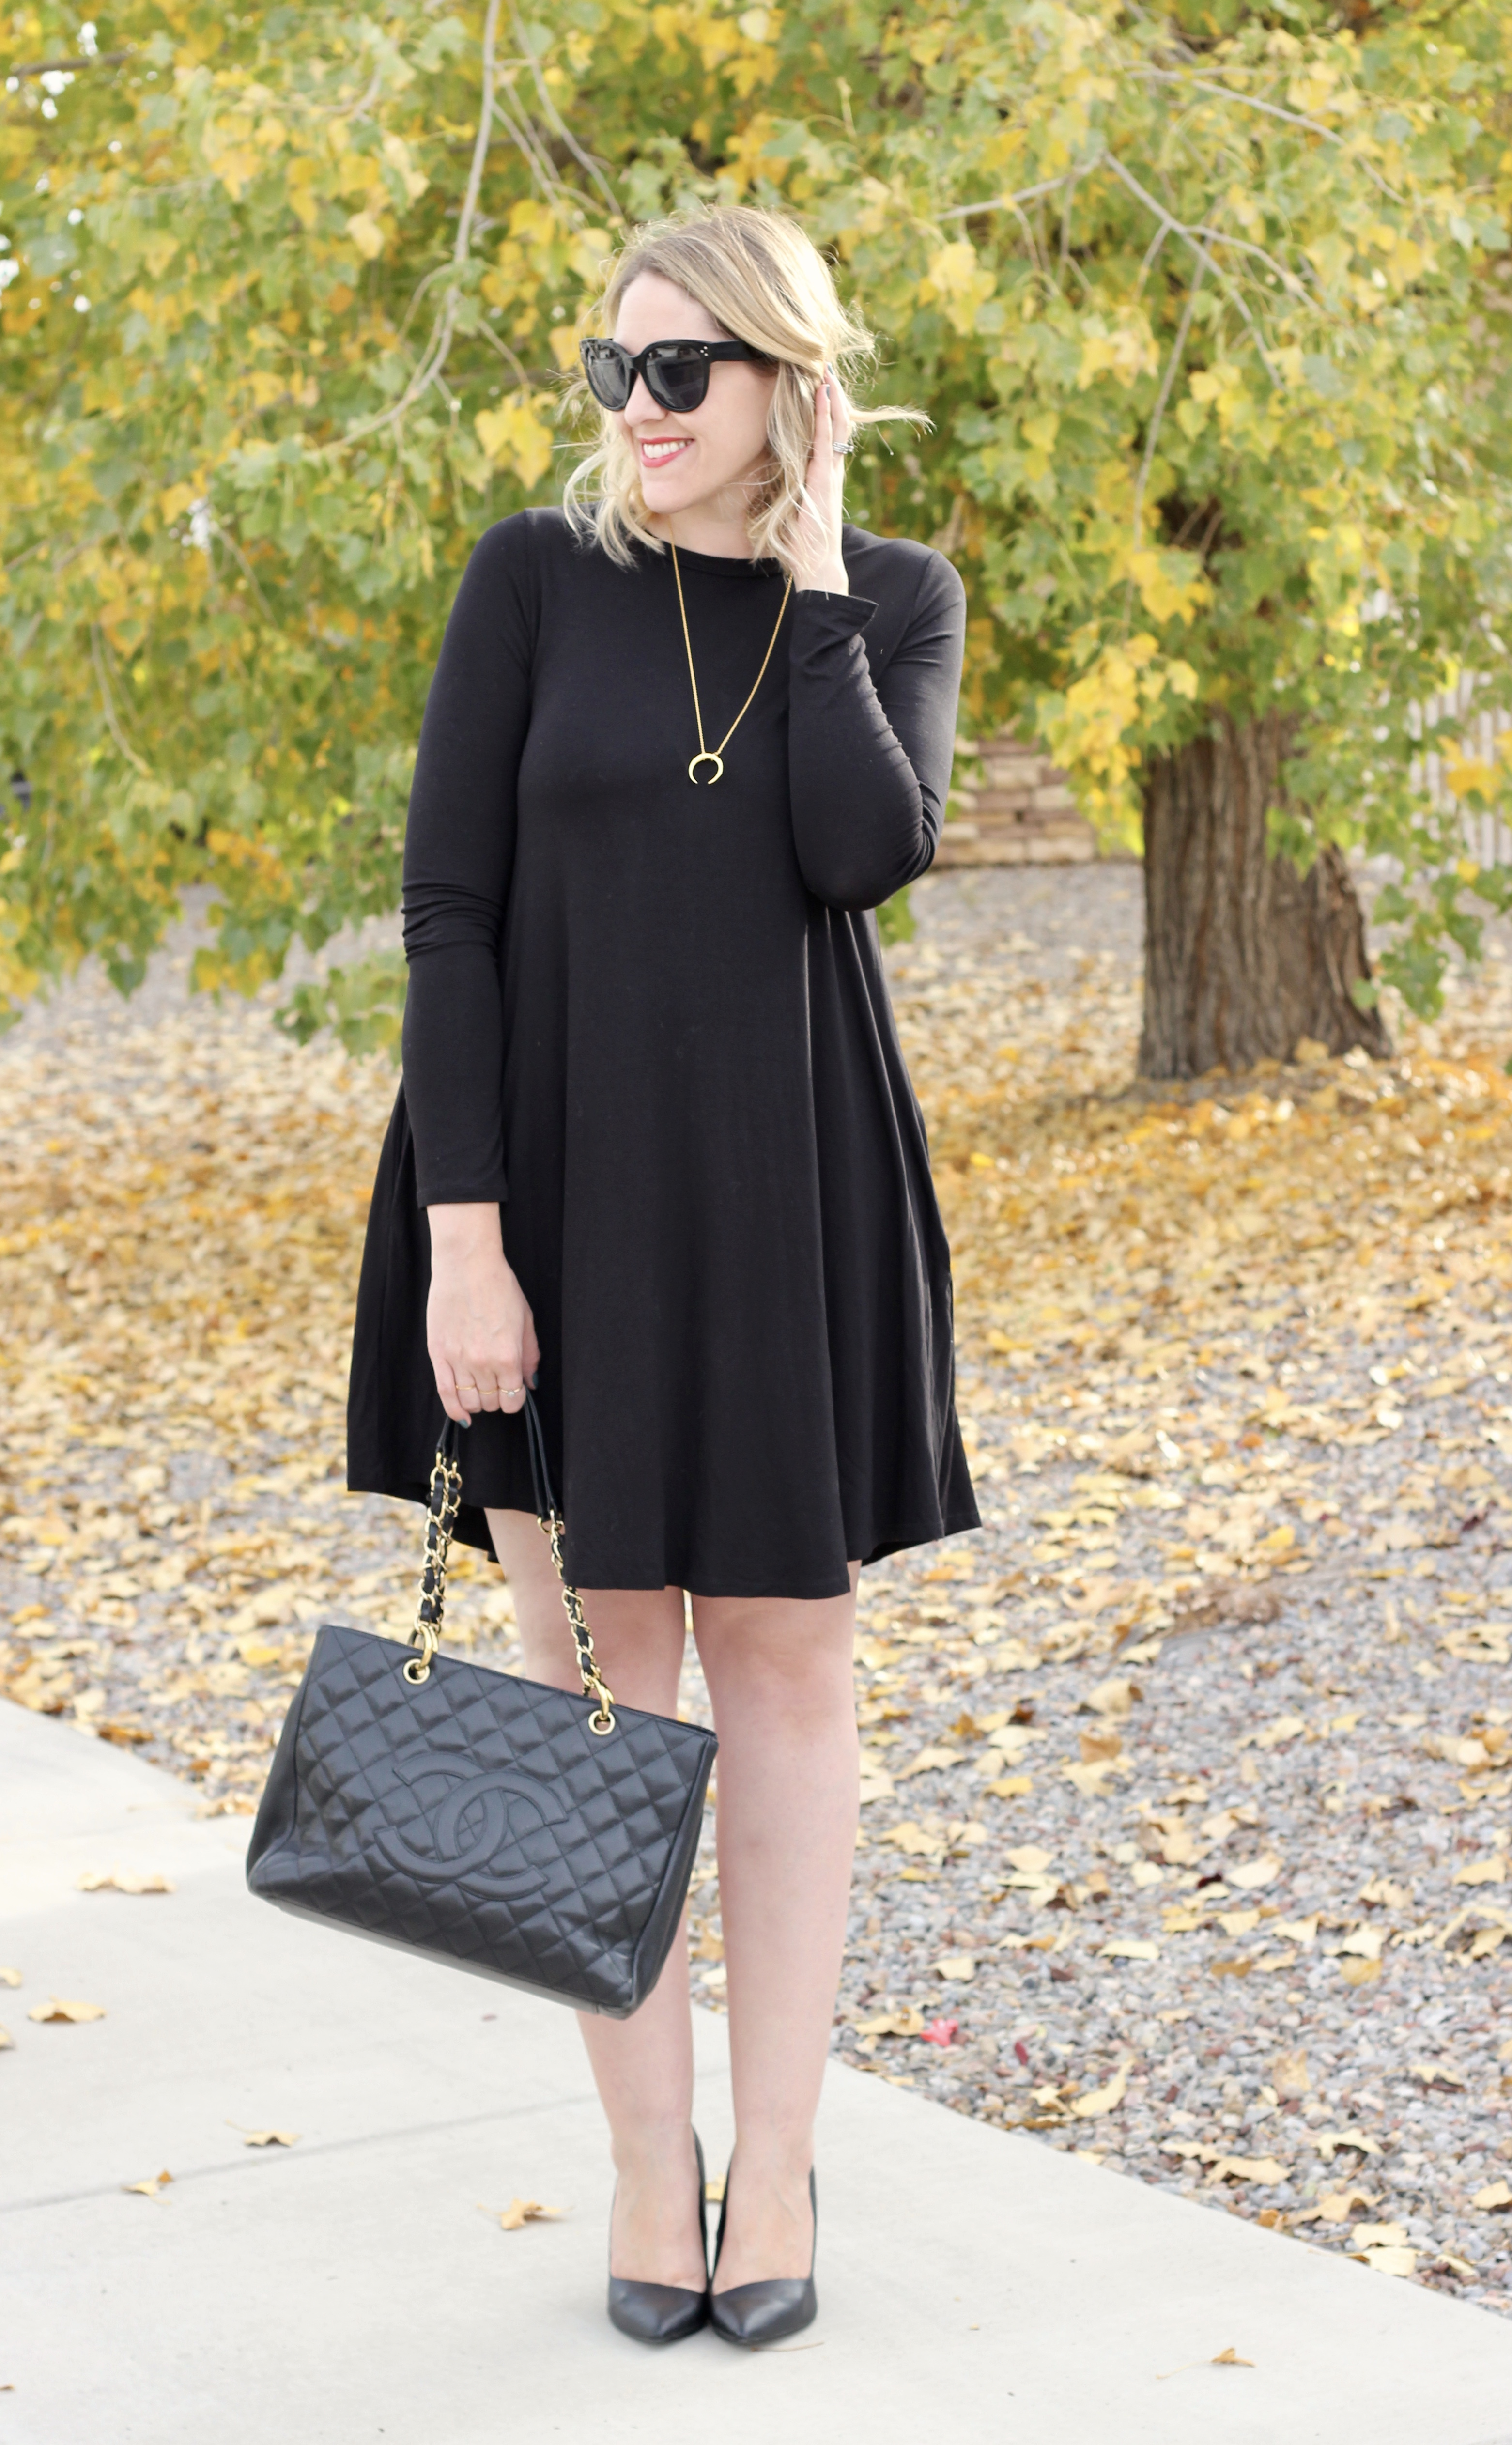 little black dress for tall girls #tallfashion #lbd #littleblackdress #chanel